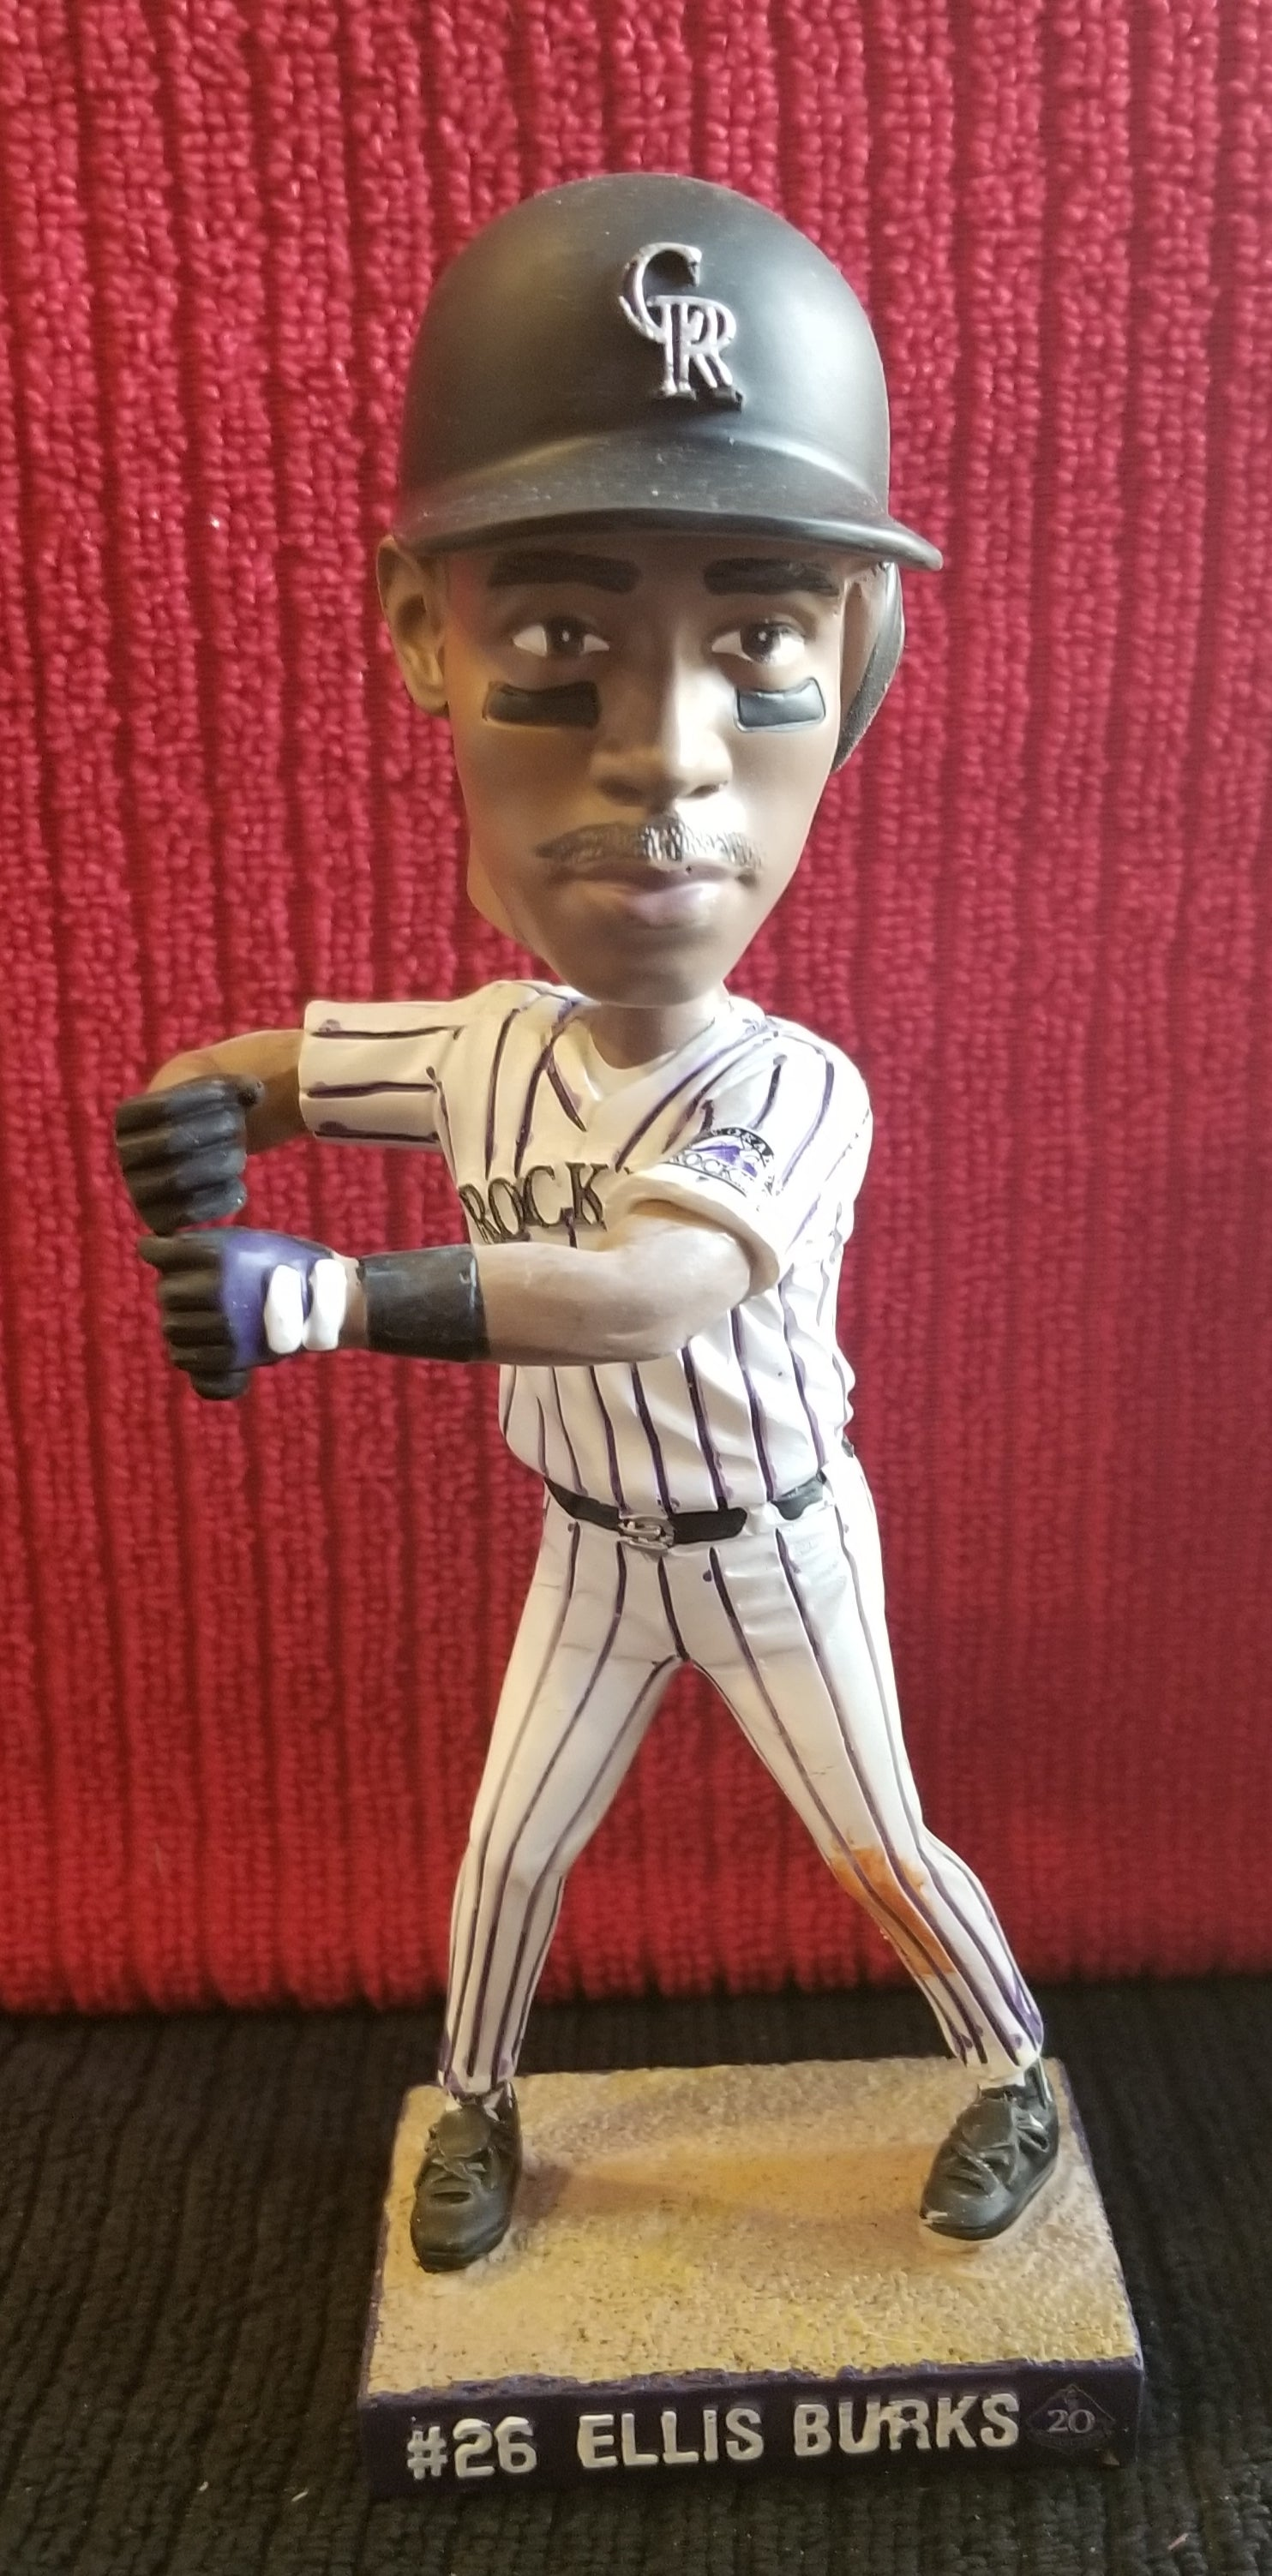 Ellis Burks #26 Colorado Rockies 20th Anniversary 2013 Sports Authority Collector's Edition (SGA) Bobblehead